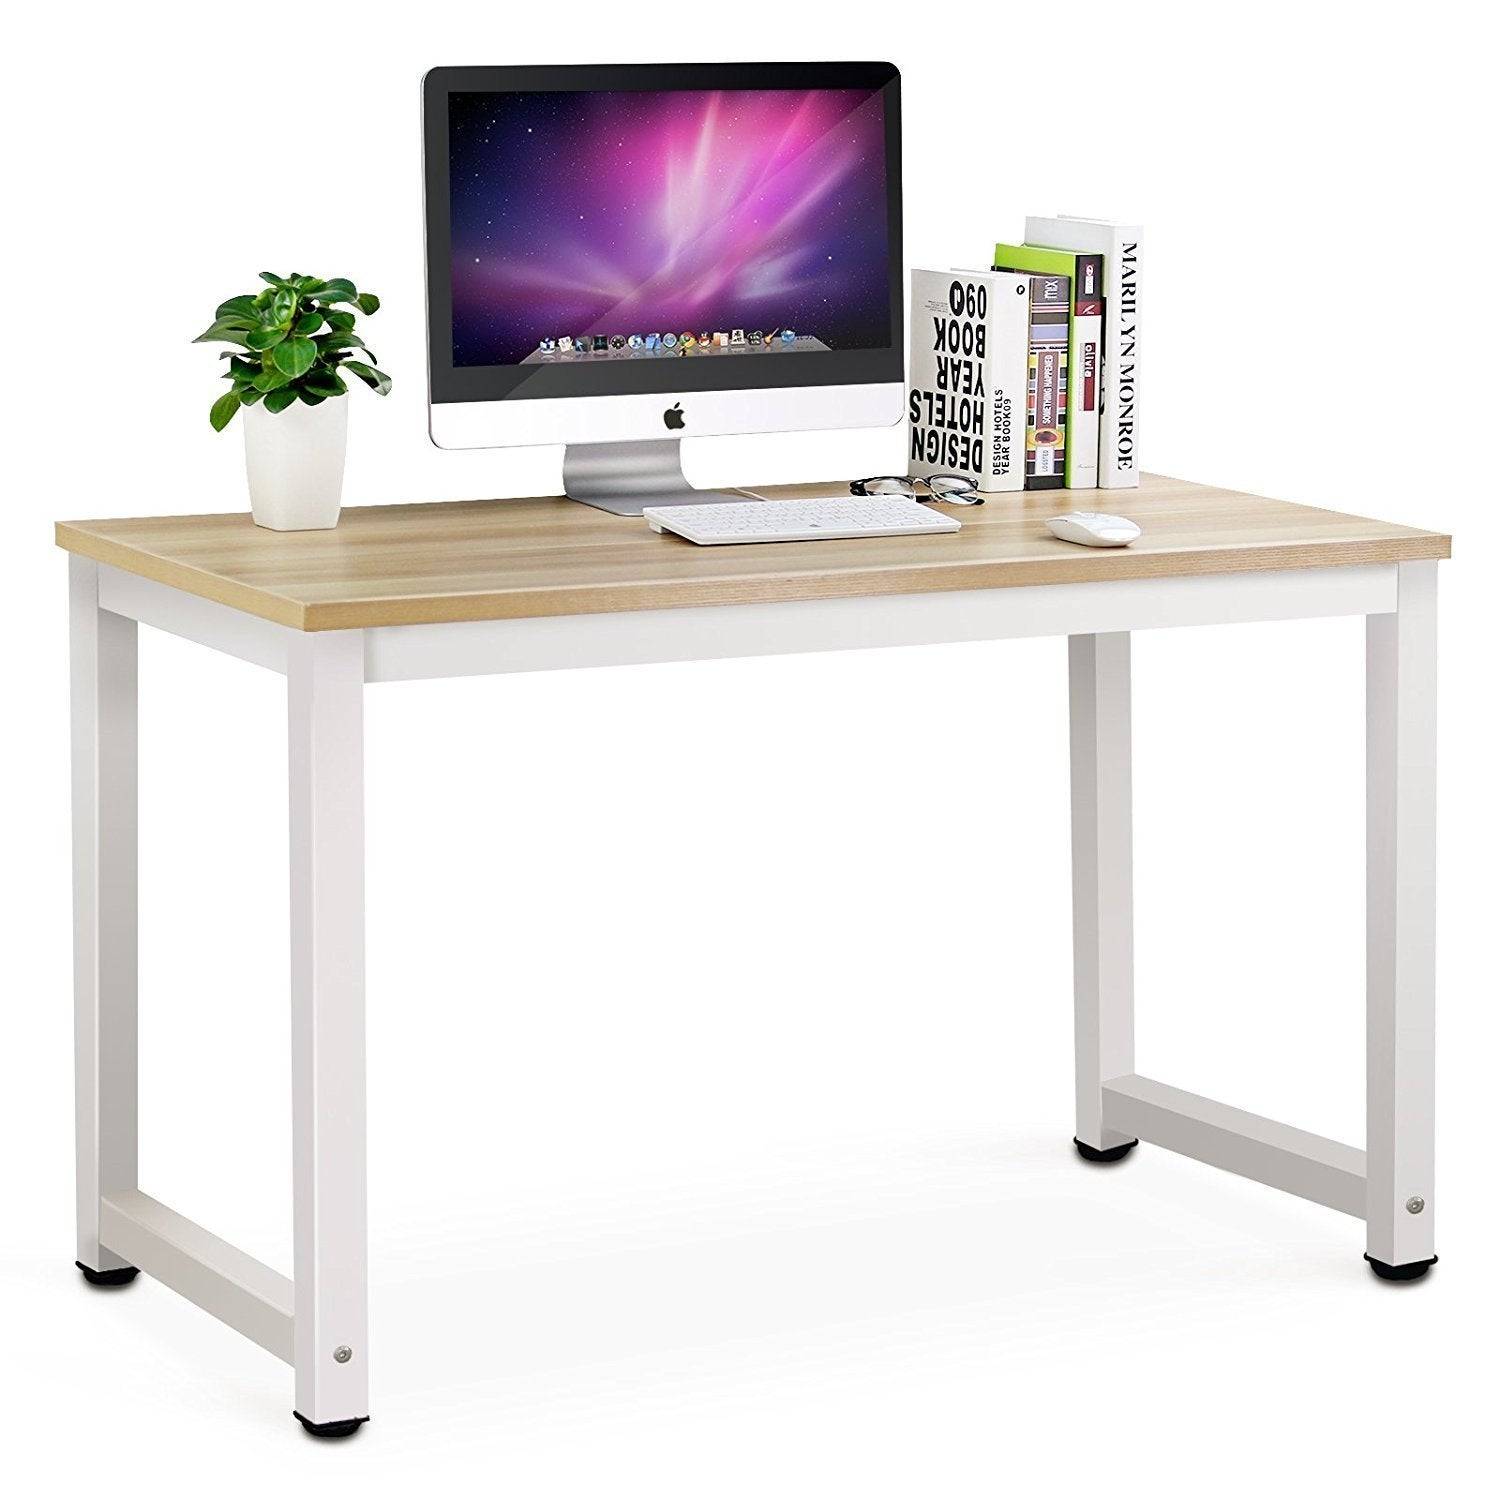 design office desk home simple shop computer desk modern simple office table study writing home on sale free shipping today overstockcom 22118125